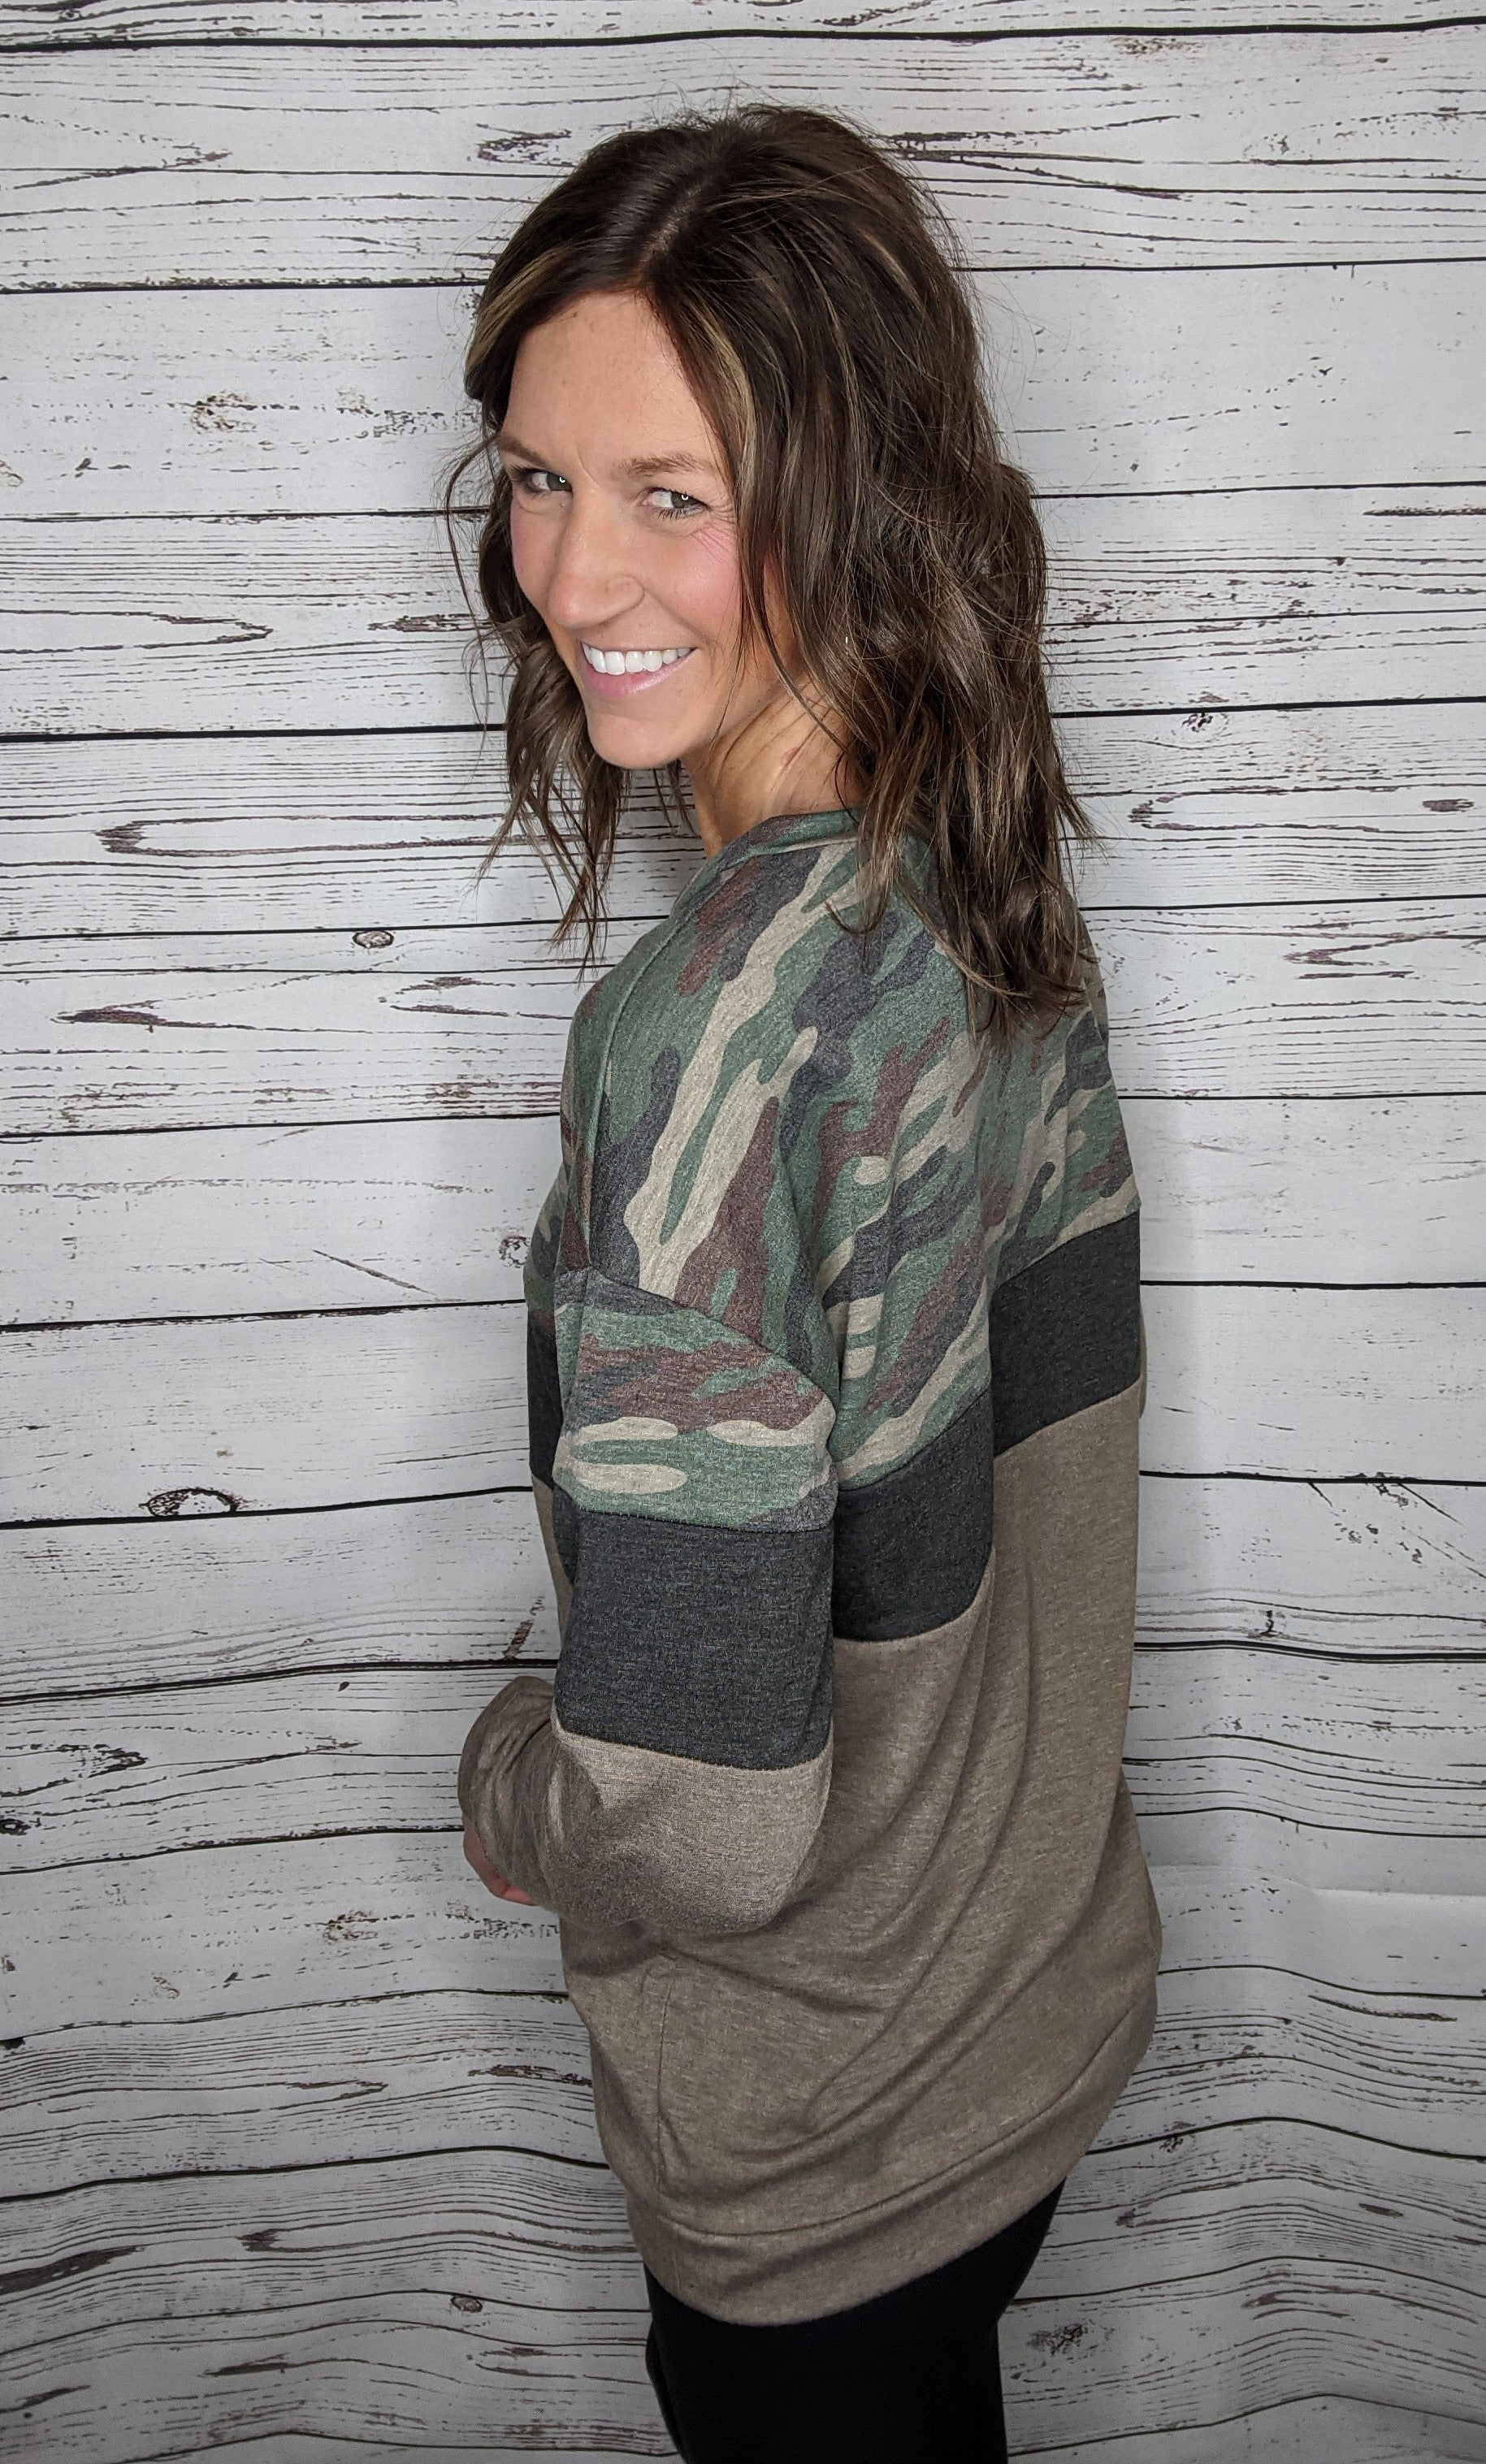 Crazy for Camo Top